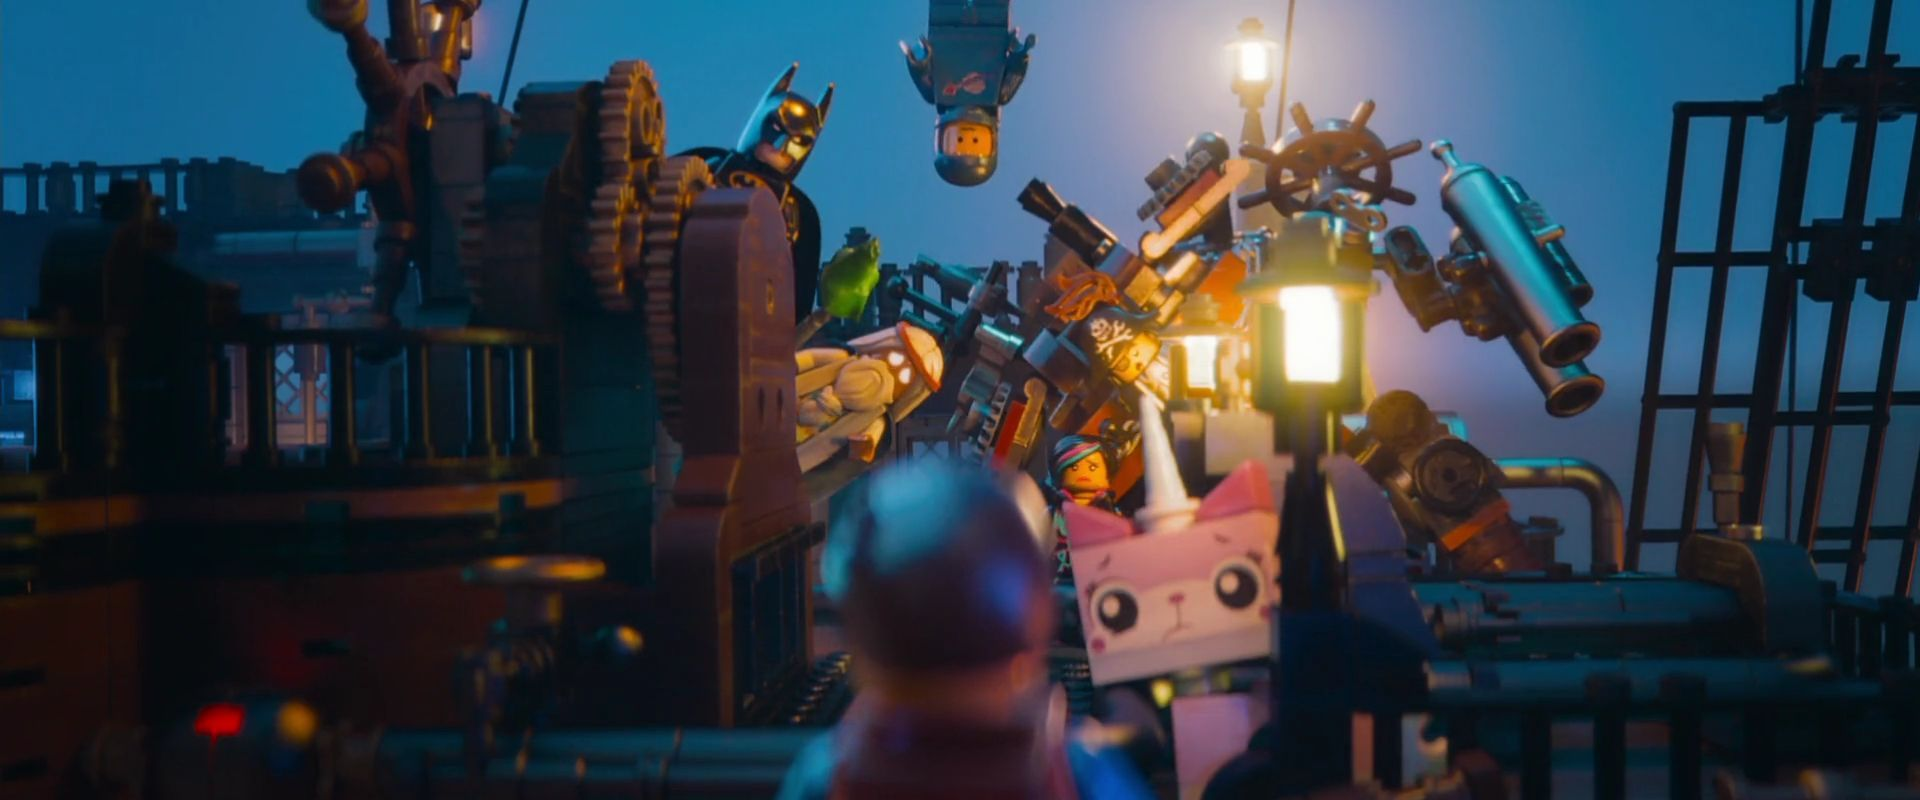 Lego Movie The Tlm 1322 High Quality Movie Screencaps Gallery Lego Movie Movies Lego